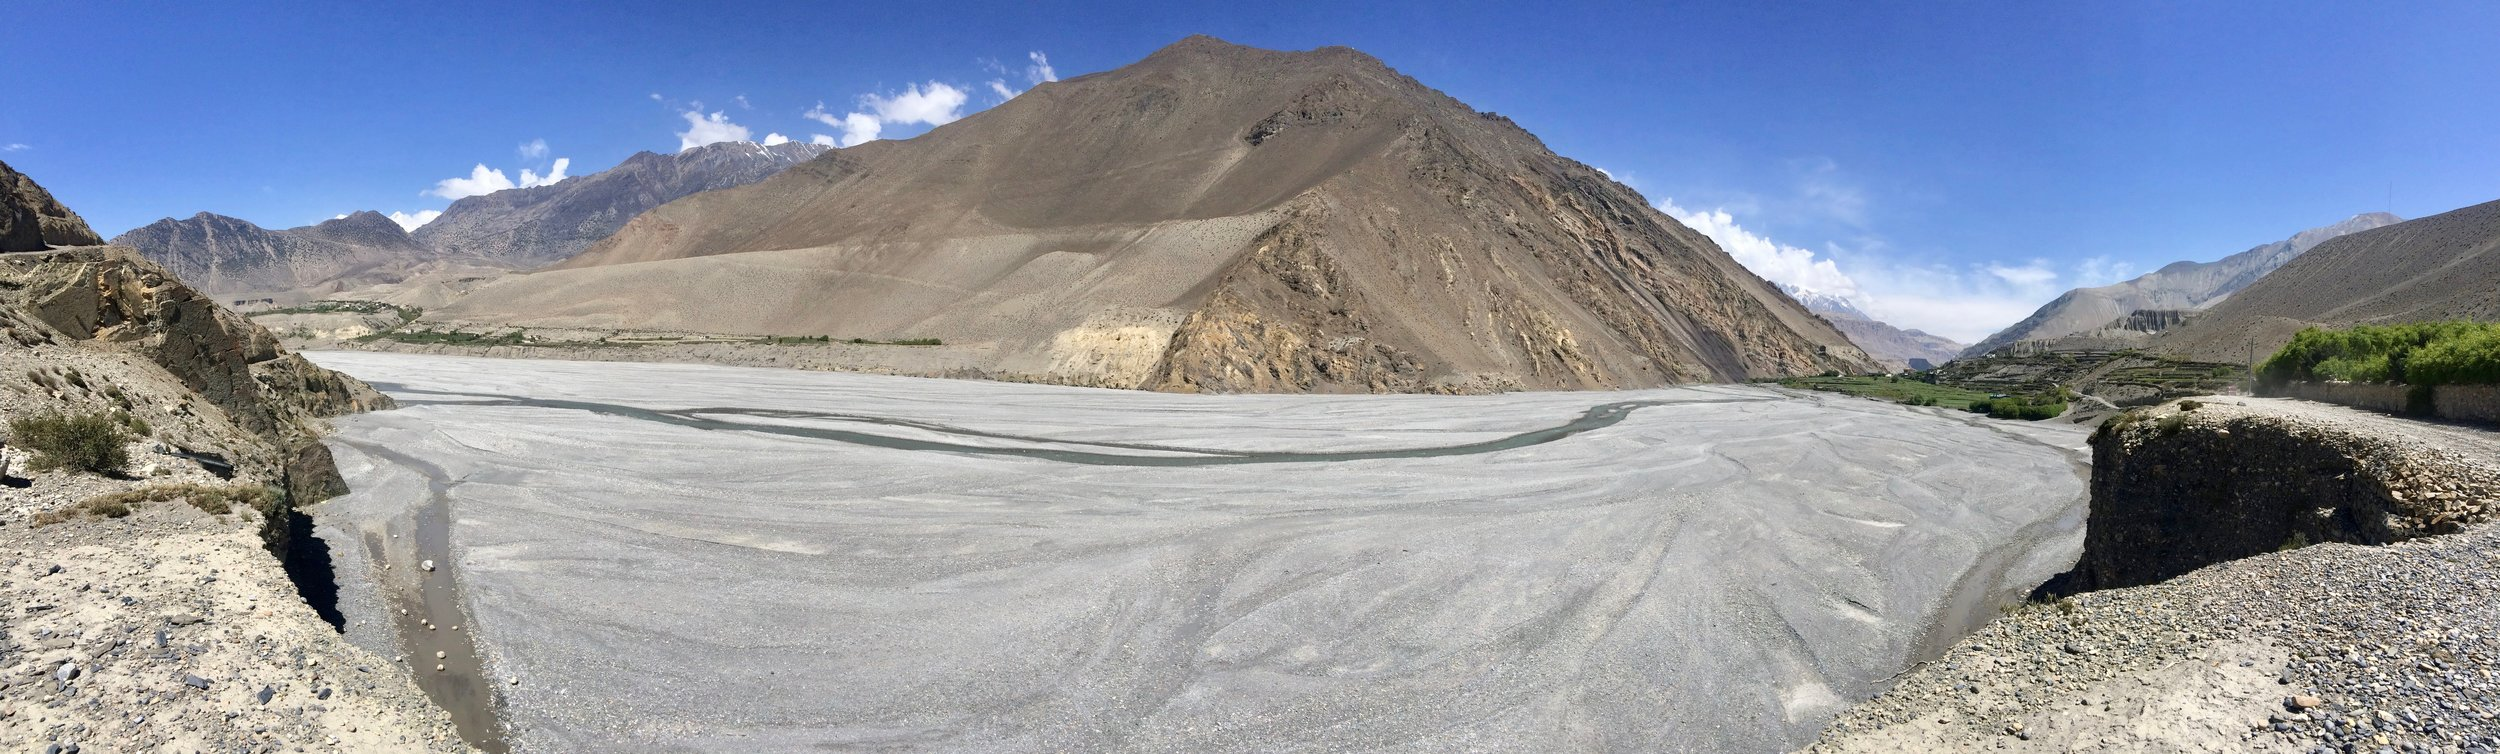 The Kali Gandaki river is just a ribbon in the dry season